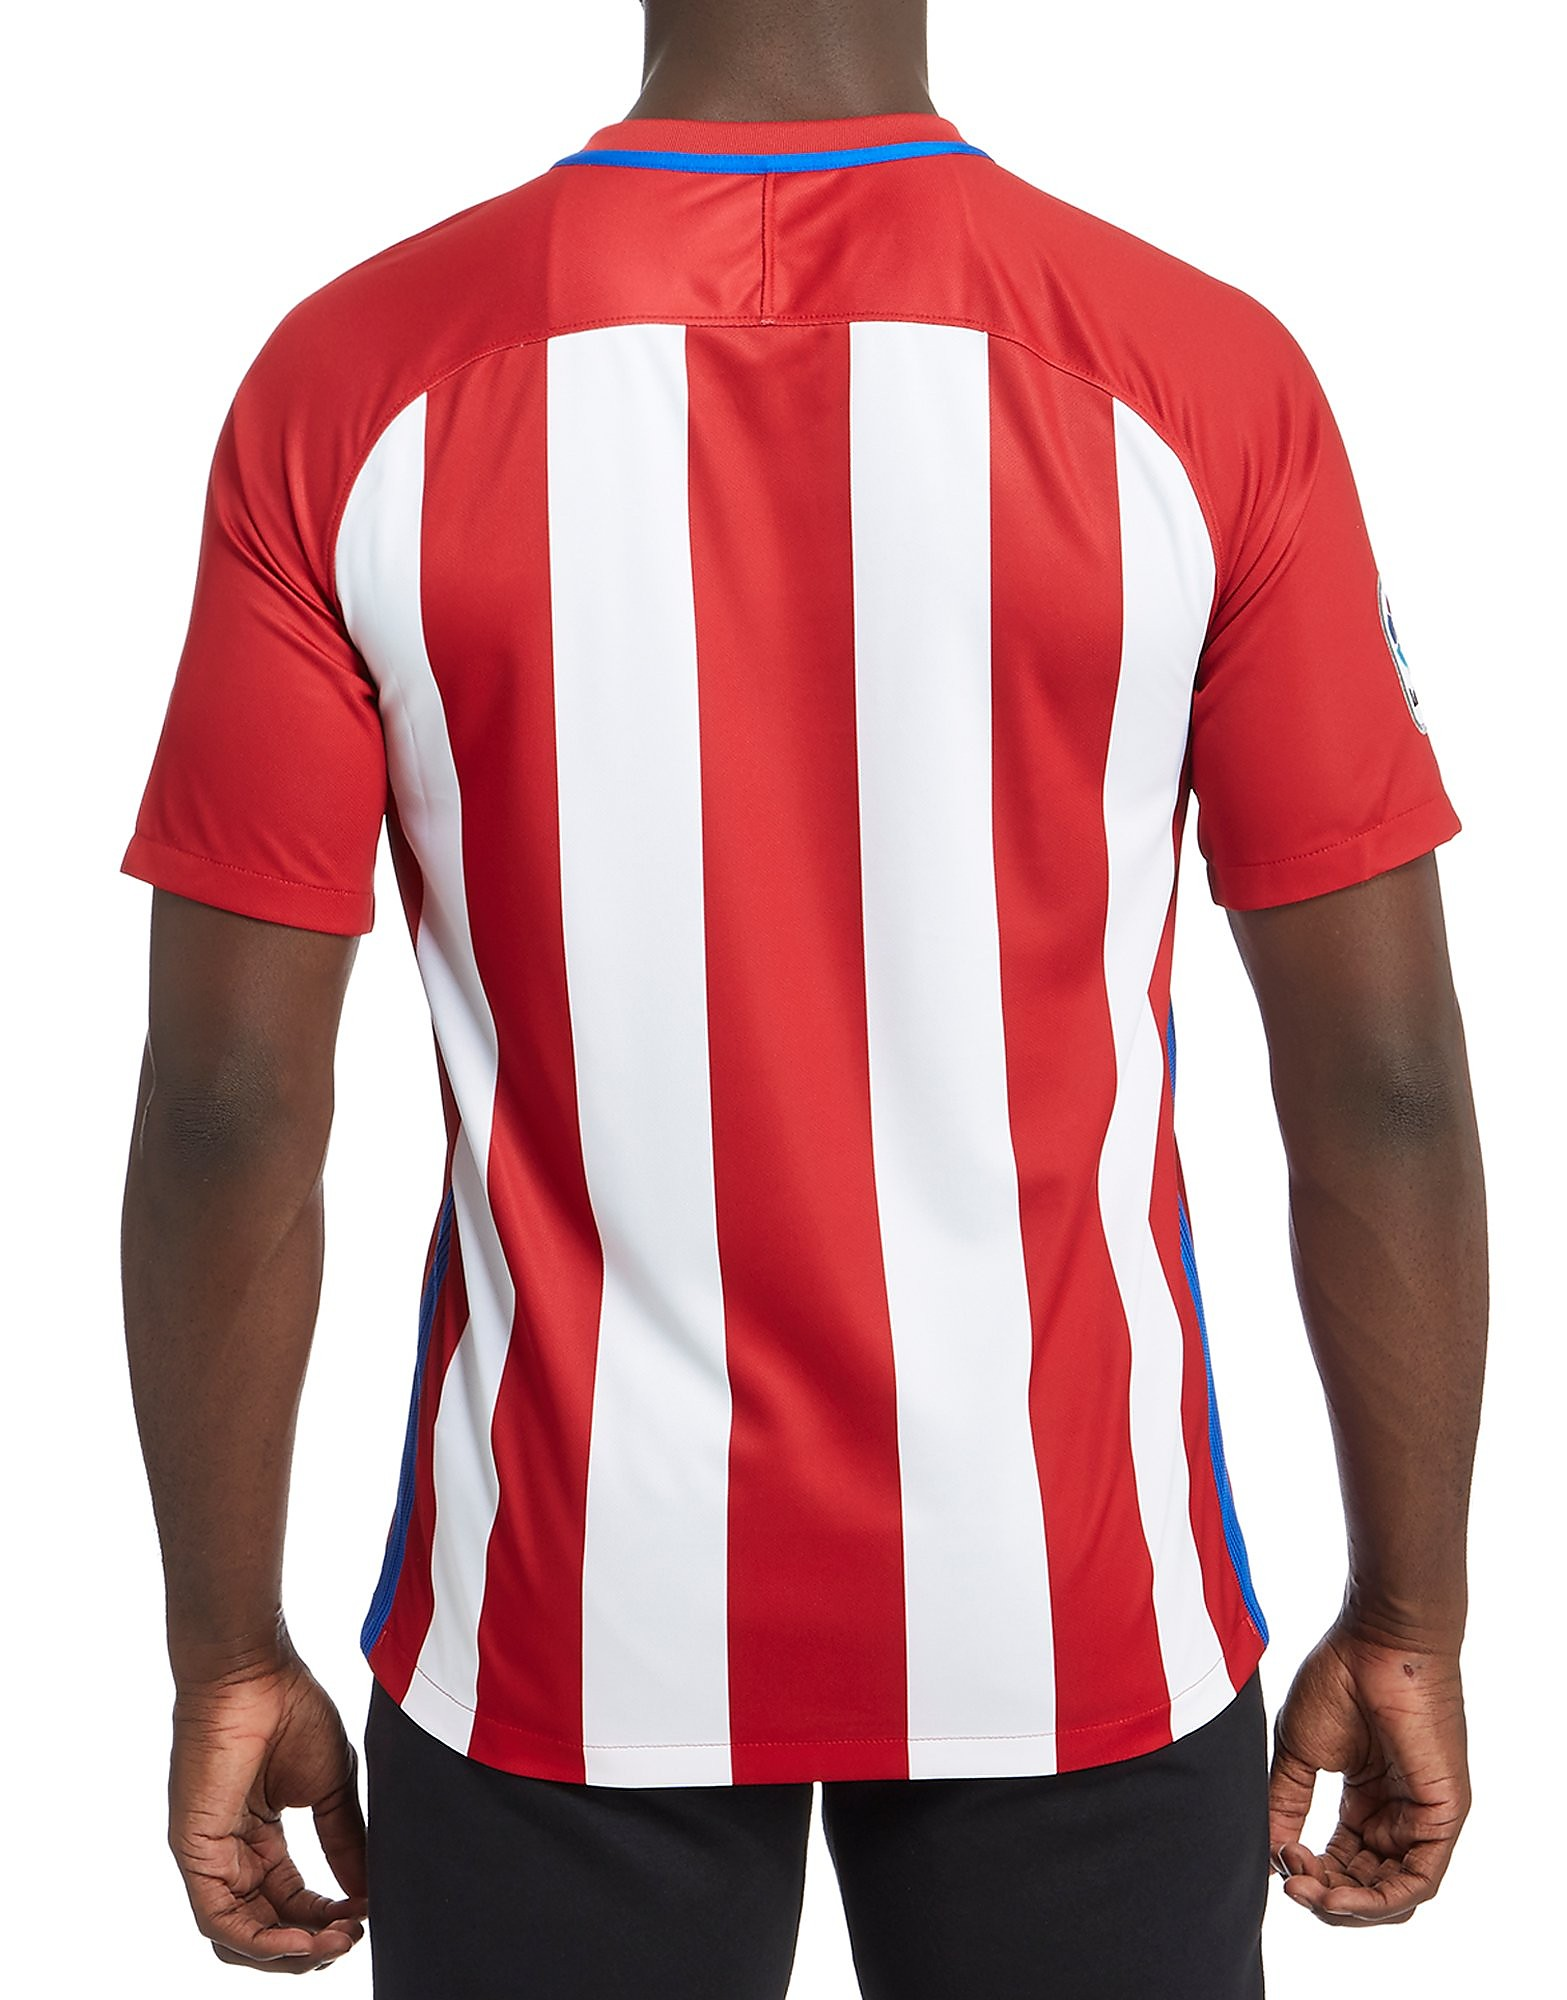 Nike Atletico Madrid 2016/17 Home Shirt